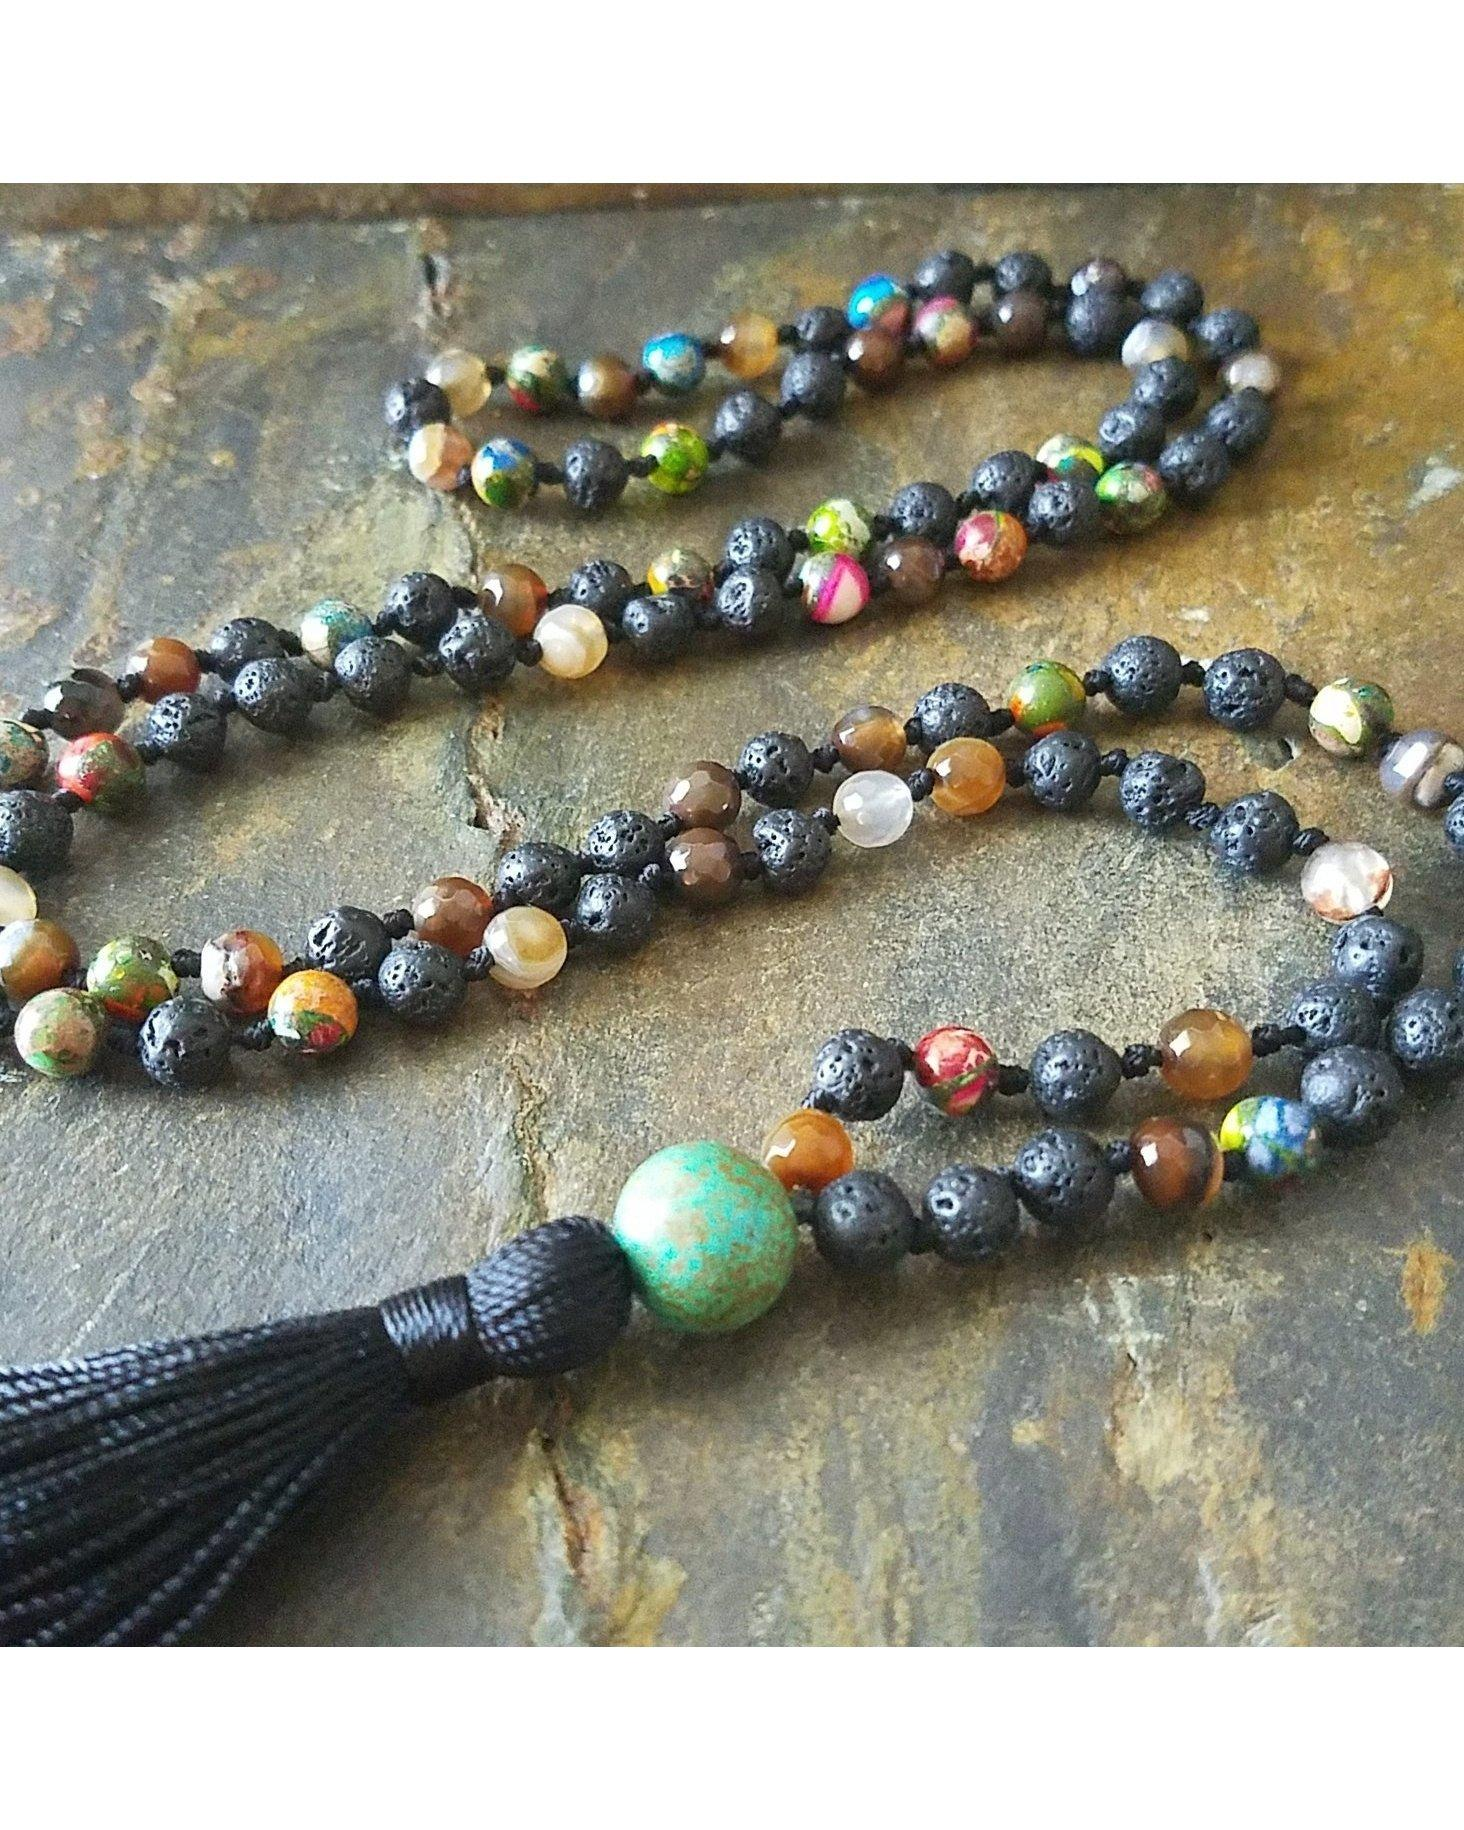 Boho~Tassel~Mala Style Essential Oil Diffuser Long Necklace: Mixed Semi-Precious Gemstone and Lava Rock 6mm Beads  L032 - Essentially Elegant